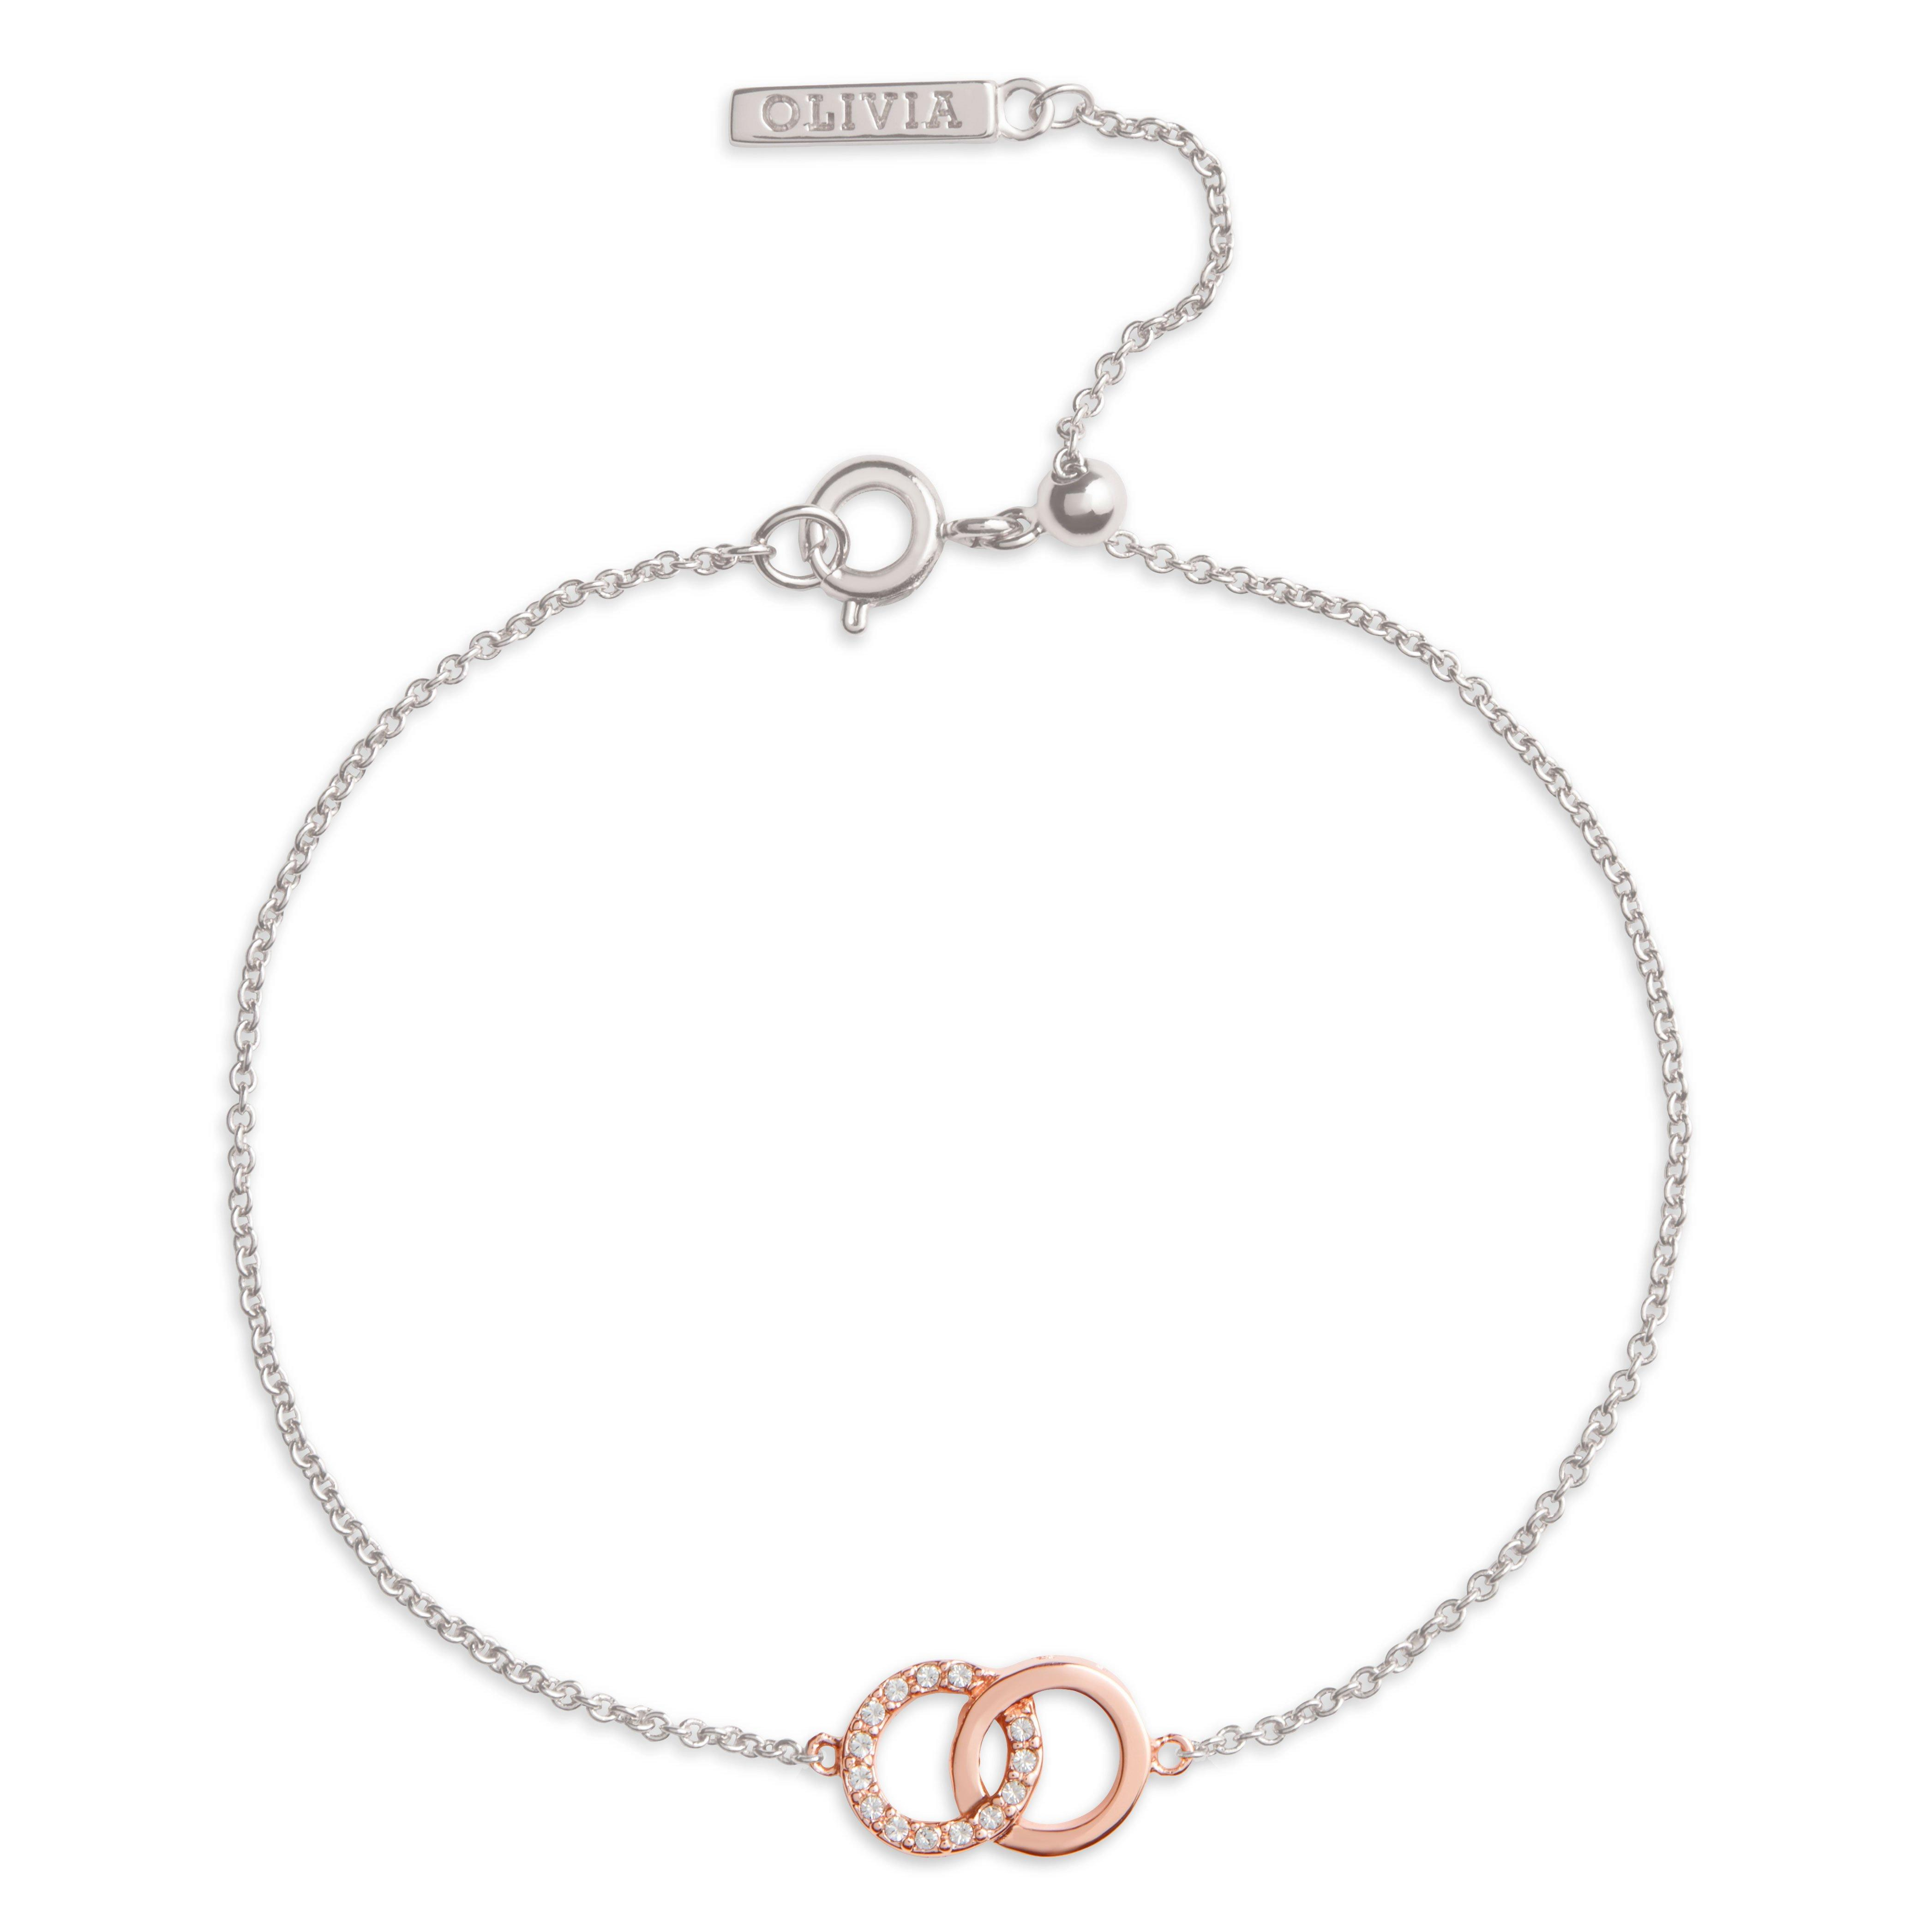 Olivia Burton Bejewelled Classics Silver and Rose Gold Tone Crystal Bracelet